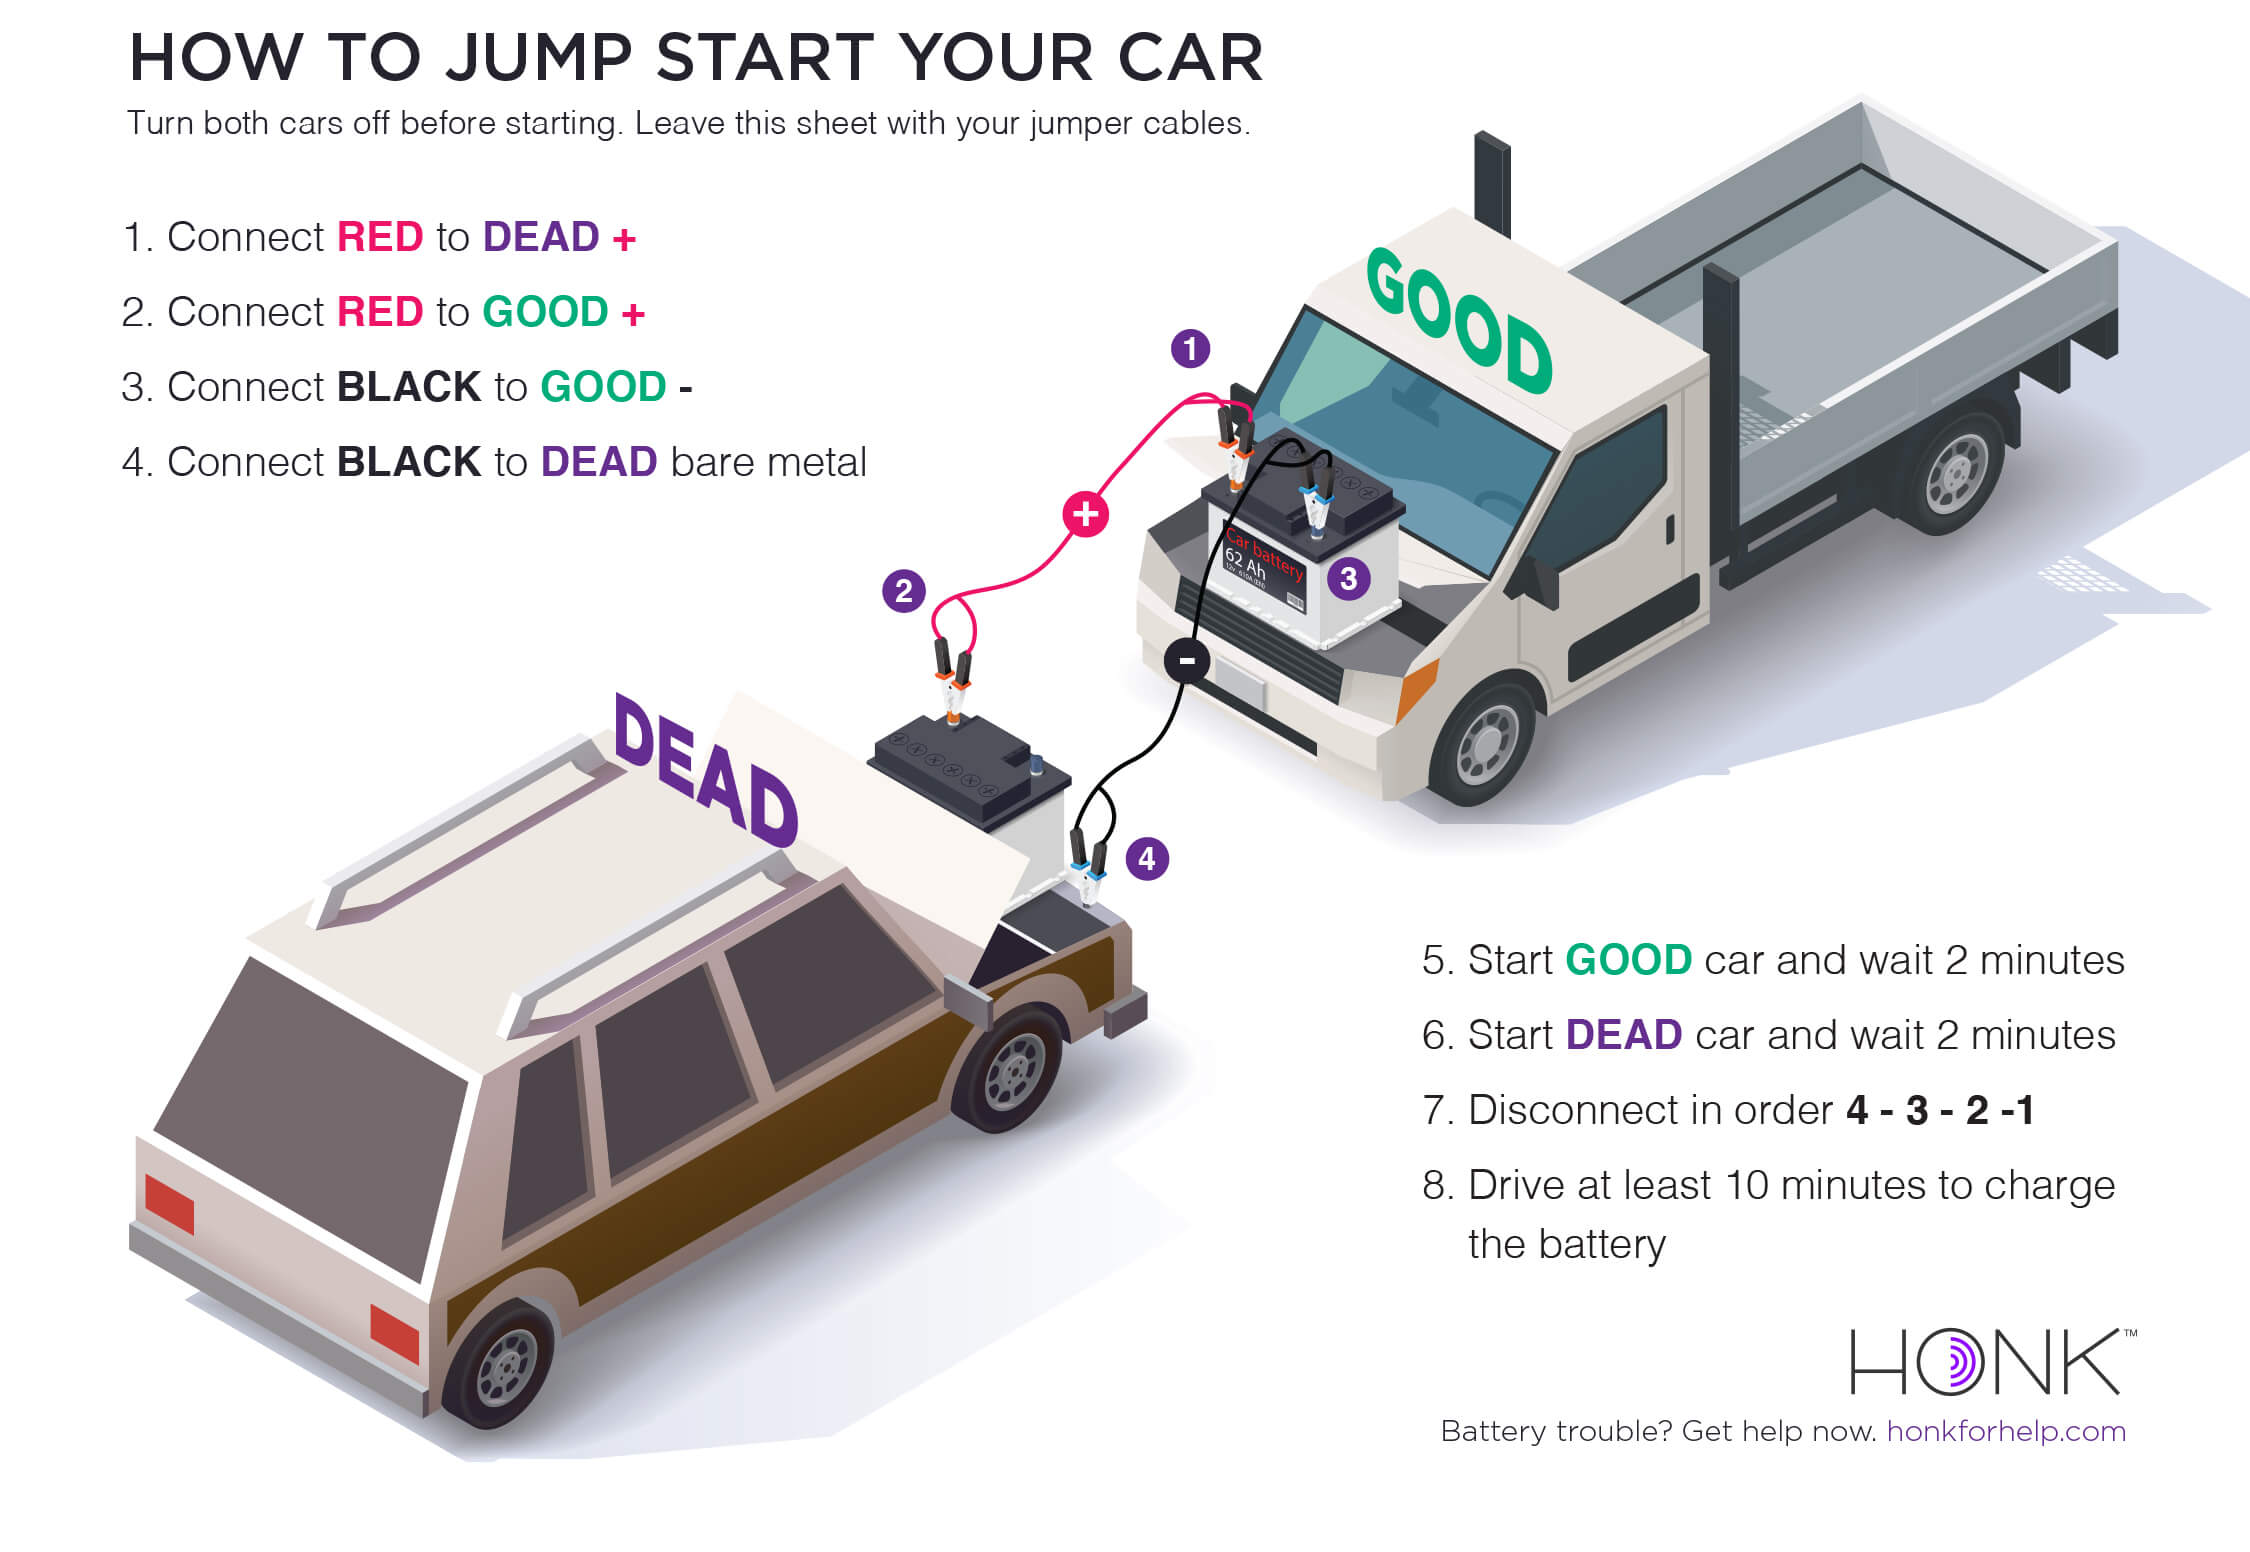 First Time Driver >> Printable Jump Start Guide - HONK